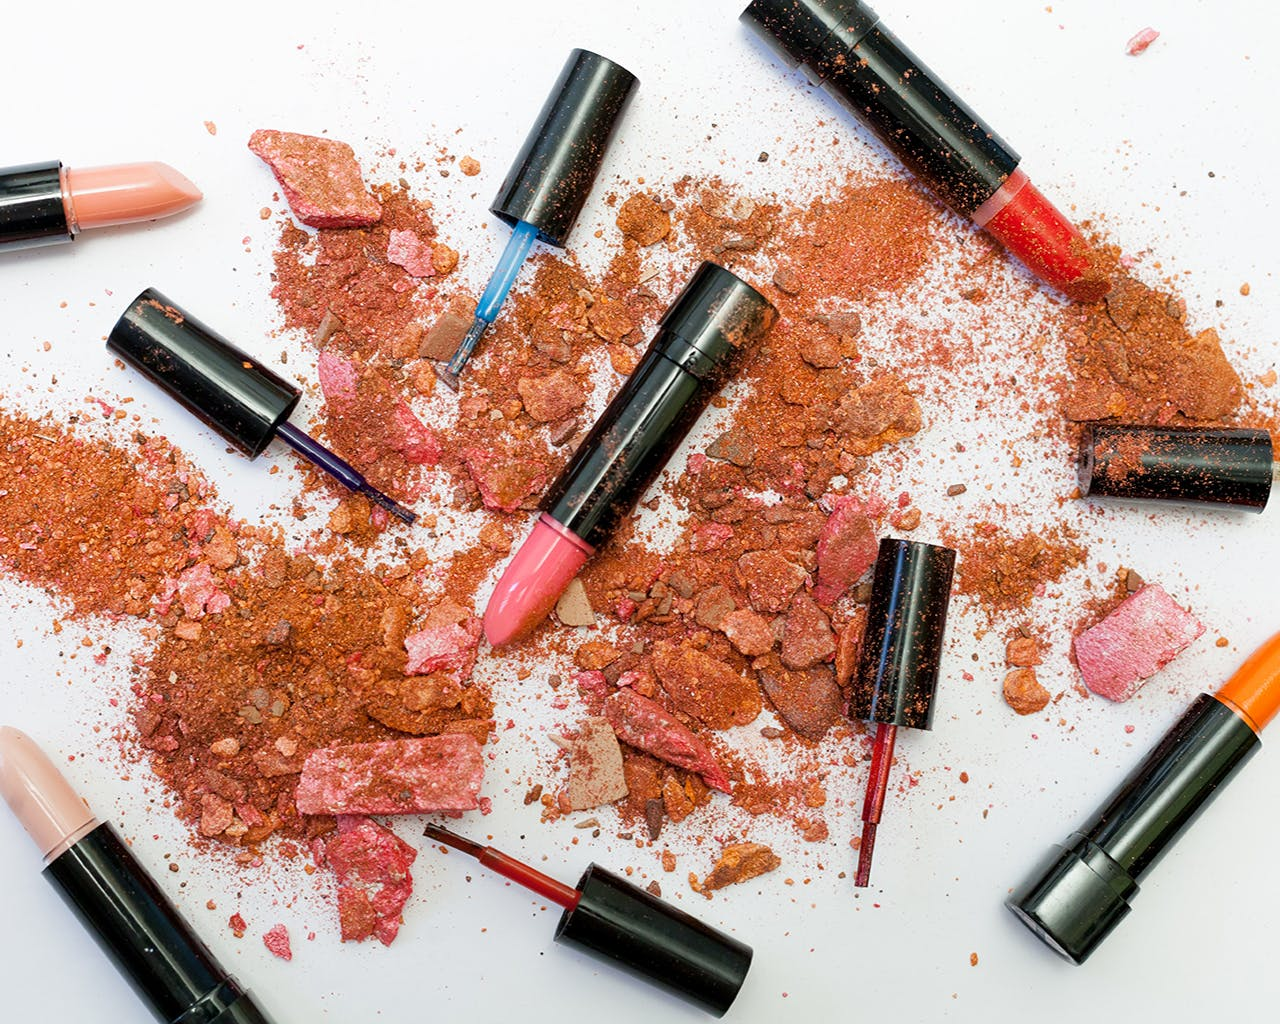 Guilt-free Beauty: Pick These Cruelty-Free Local Brands If You're Shopping For Makeup